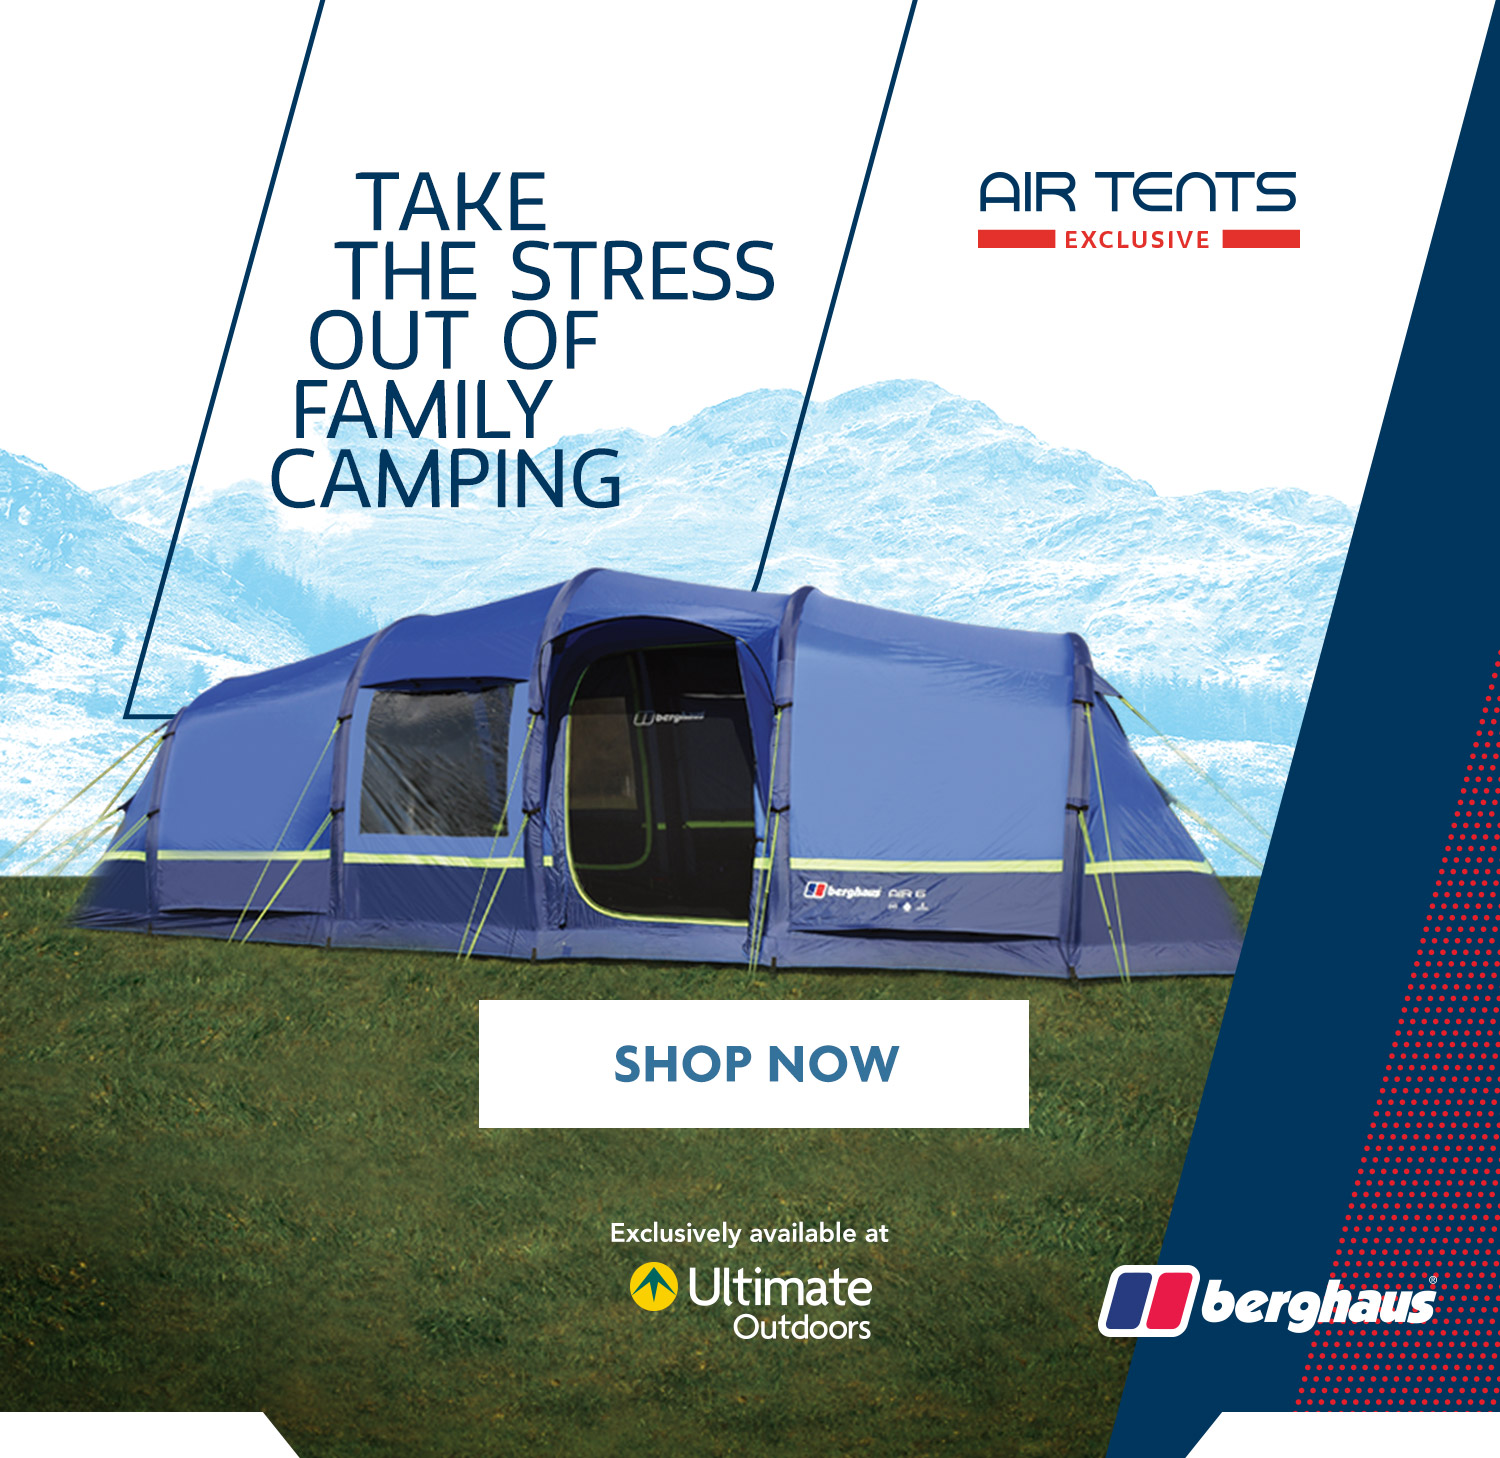 Berghaus Air Tents